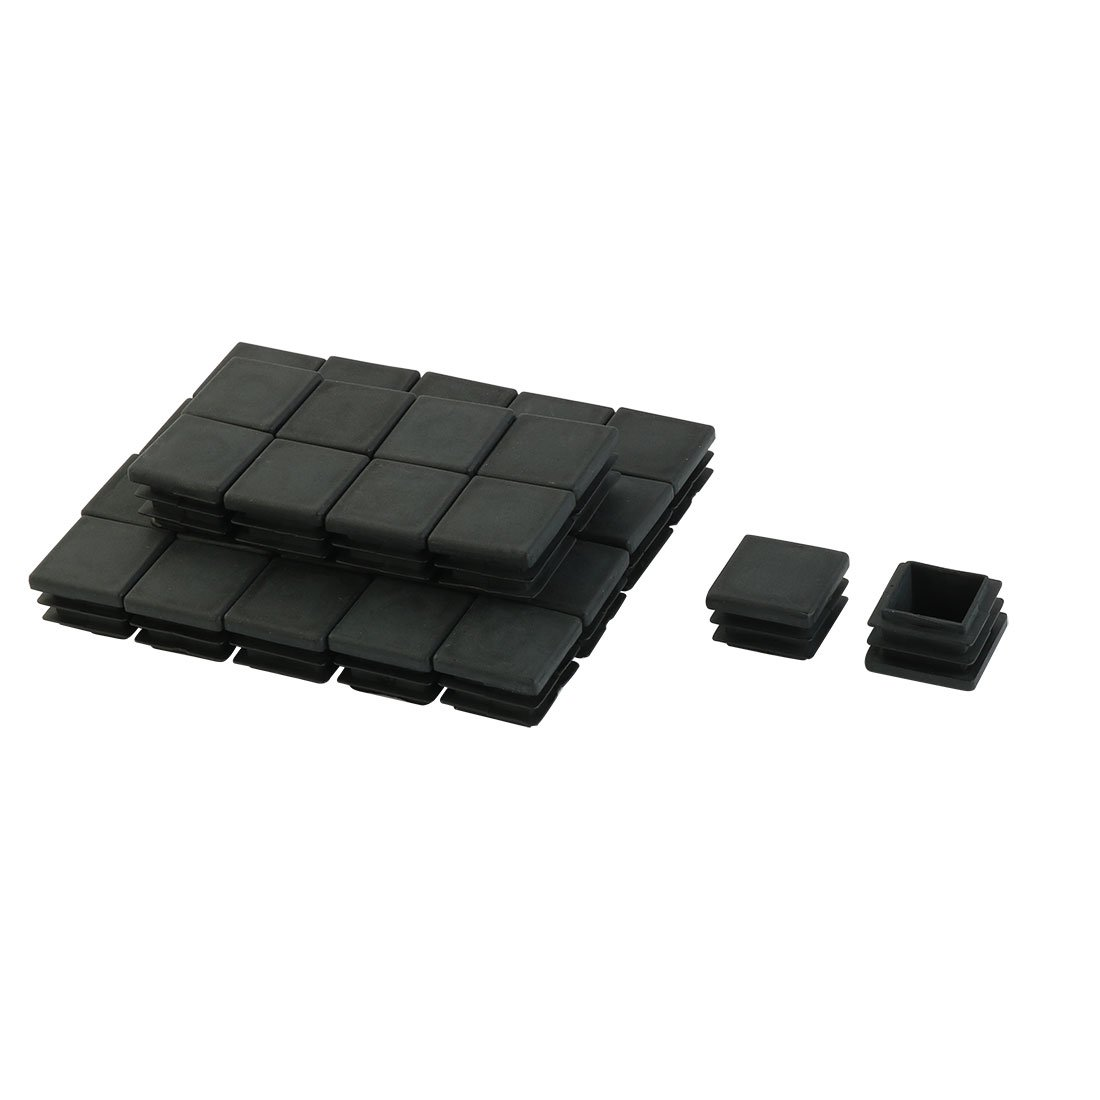 20mm x 20mm Plastic Square End Caps Tubing Tube Inserts Black 30 Pcs uxcell a15122100ux0431